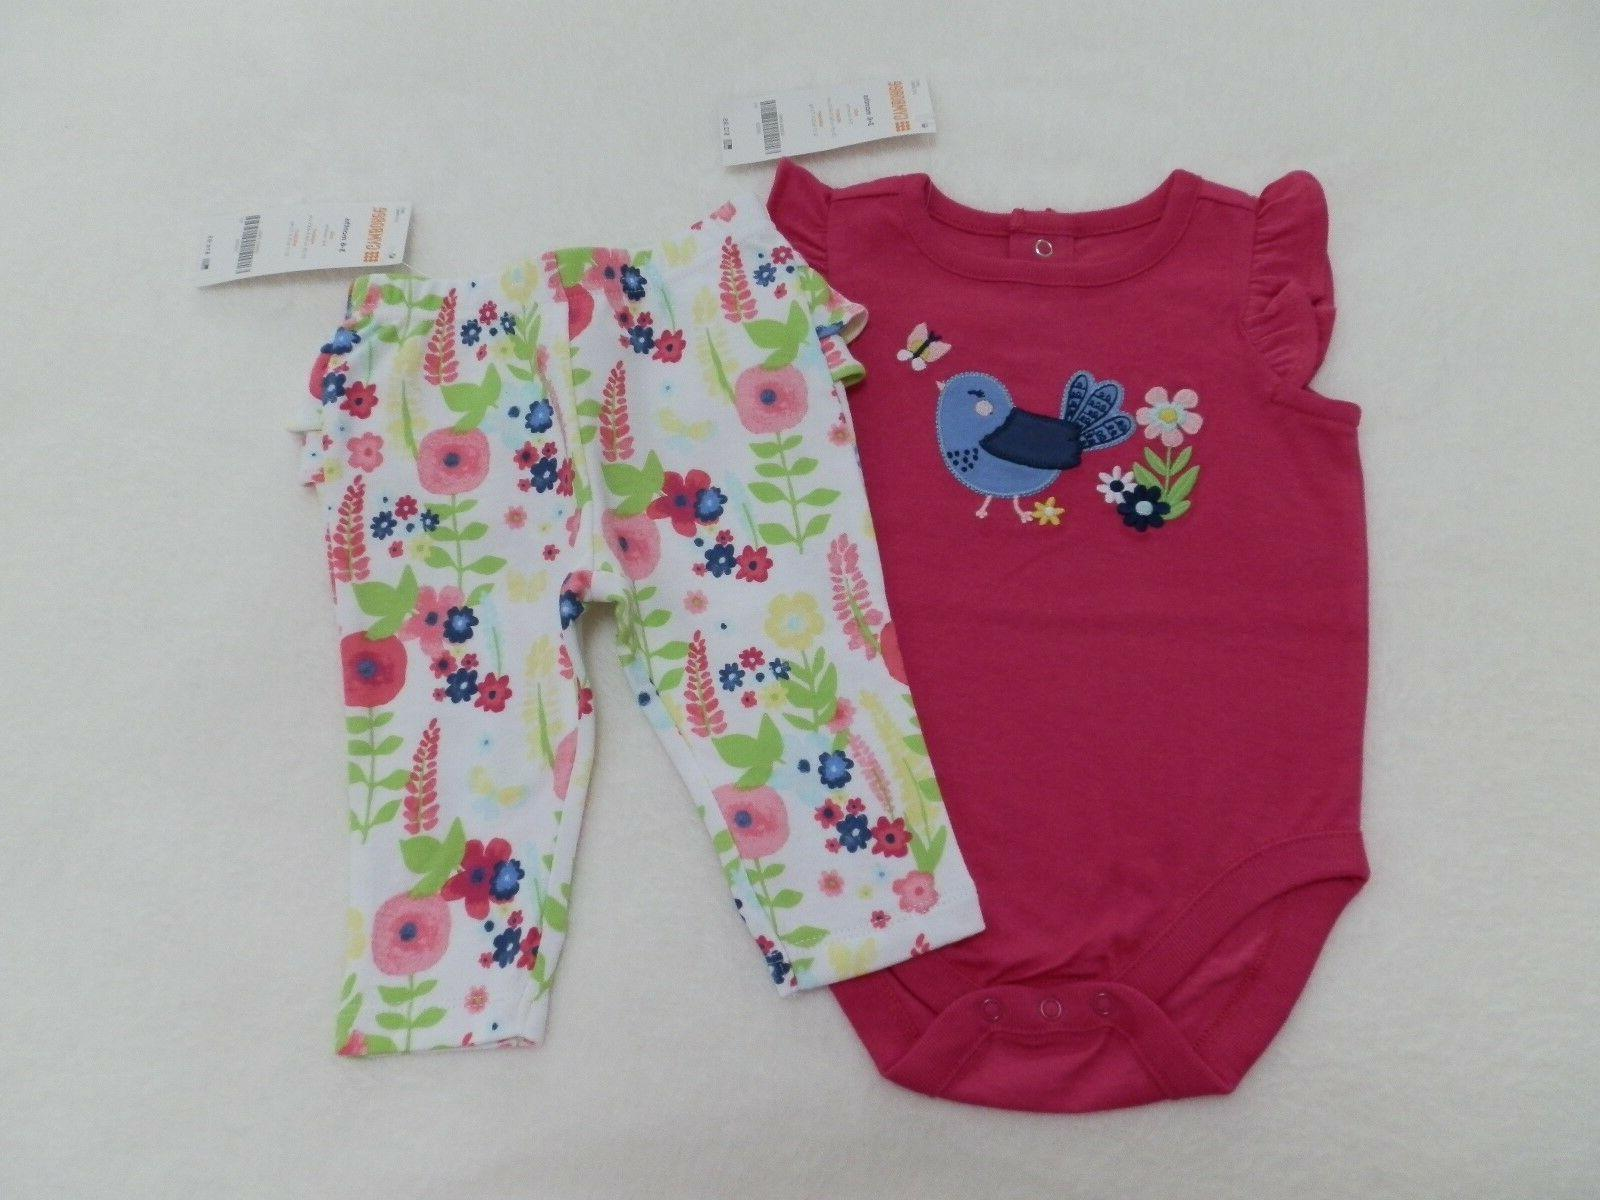 baby girl outfit pink bird bodysuit floral